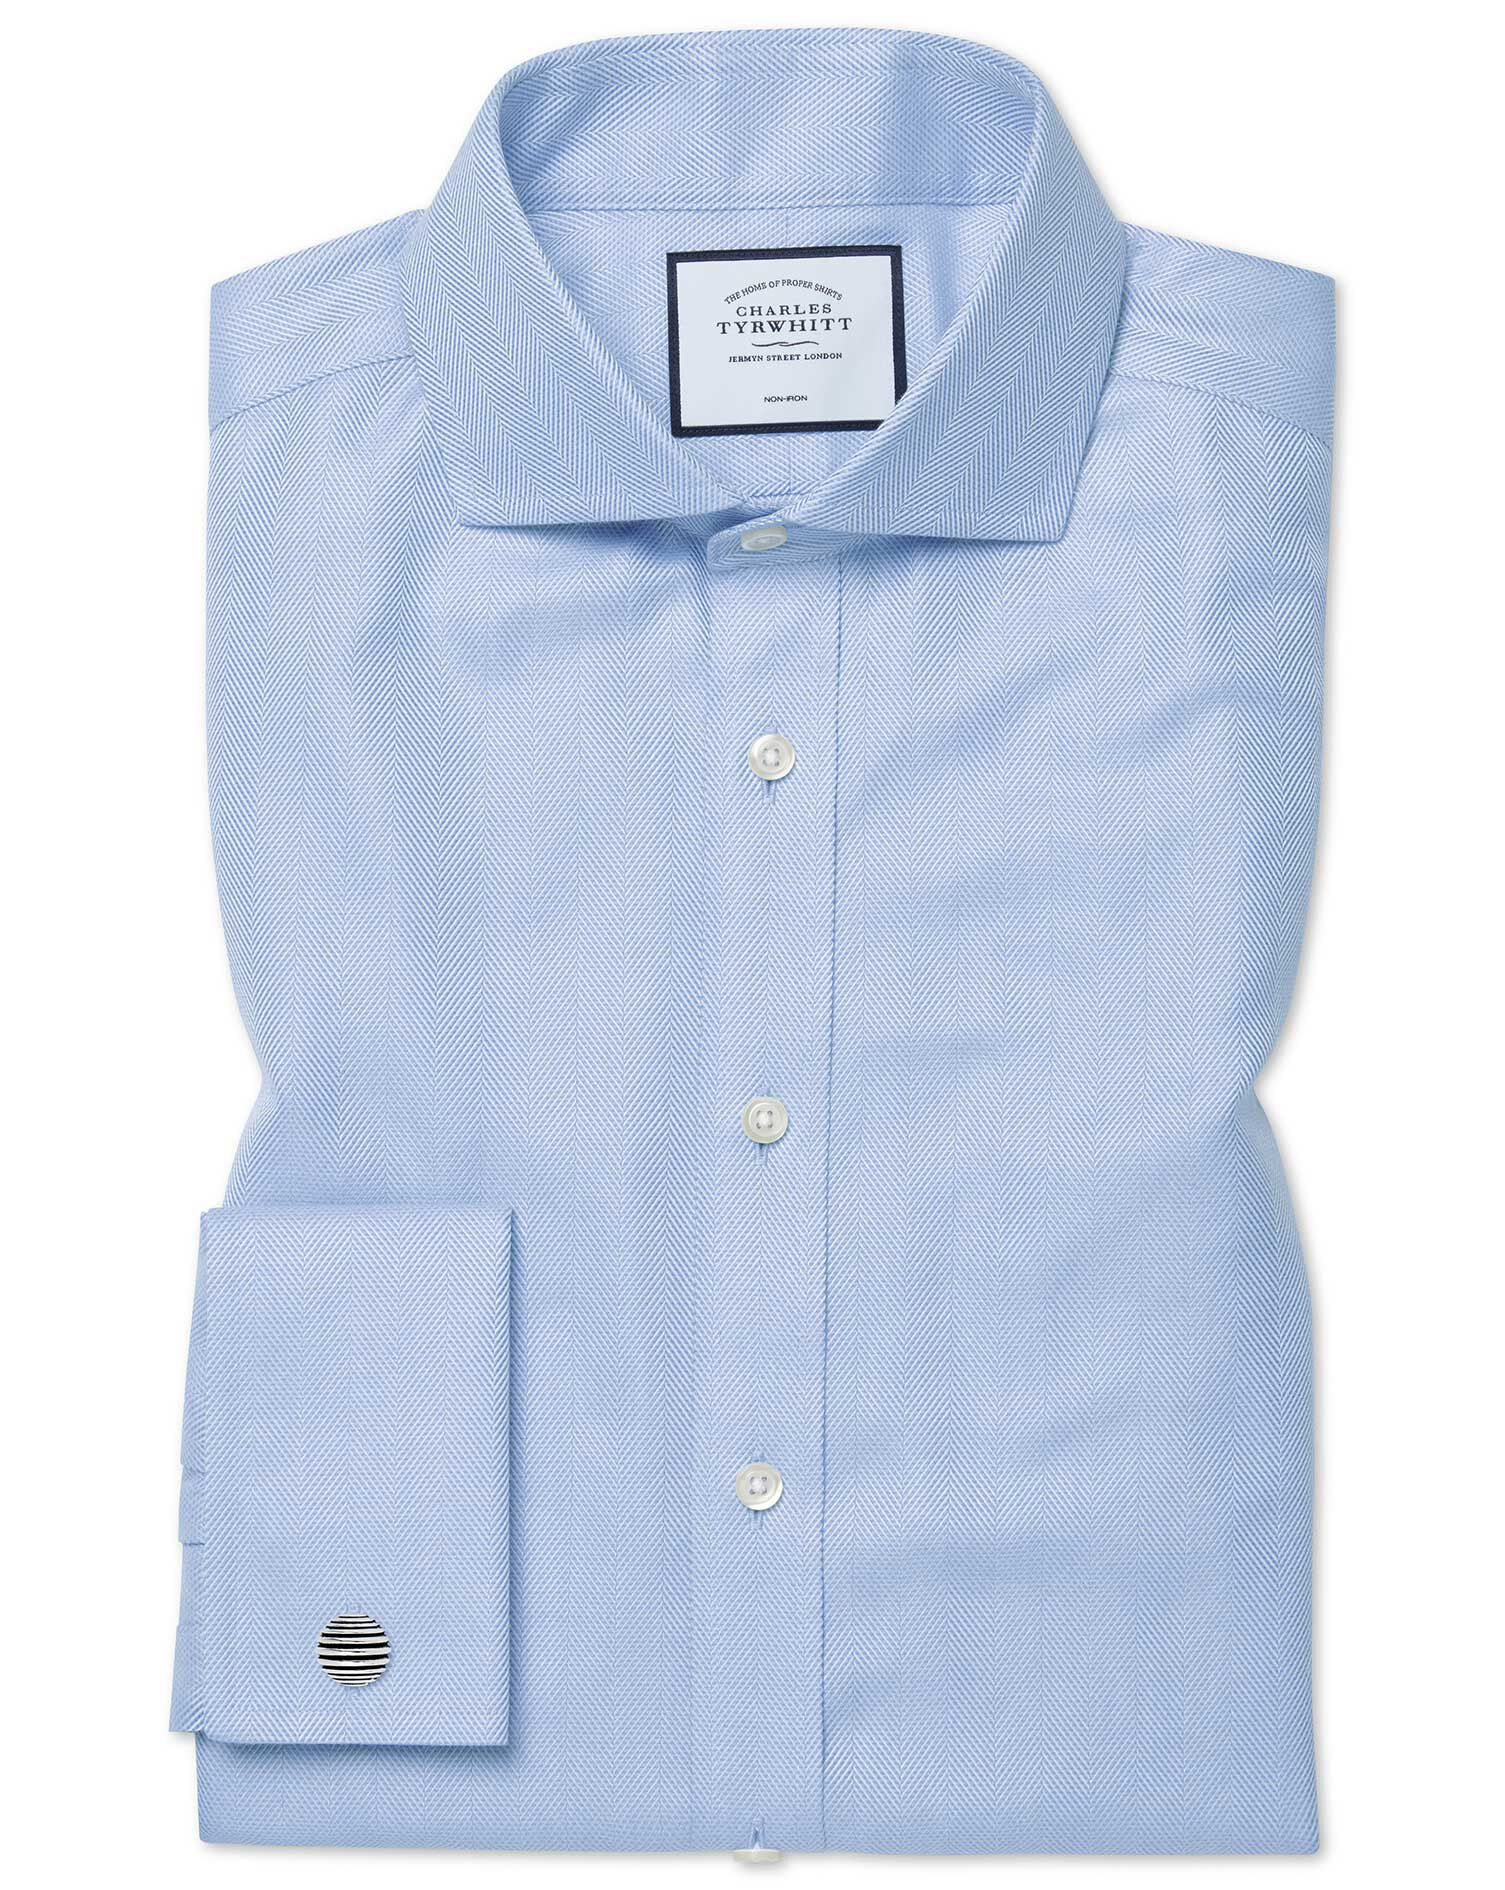 Slim Fit Cutaway Non-Iron Herringbone Sky Blue Cotton Formal Shirt Double Cuff Size 14.5/33 by Charl